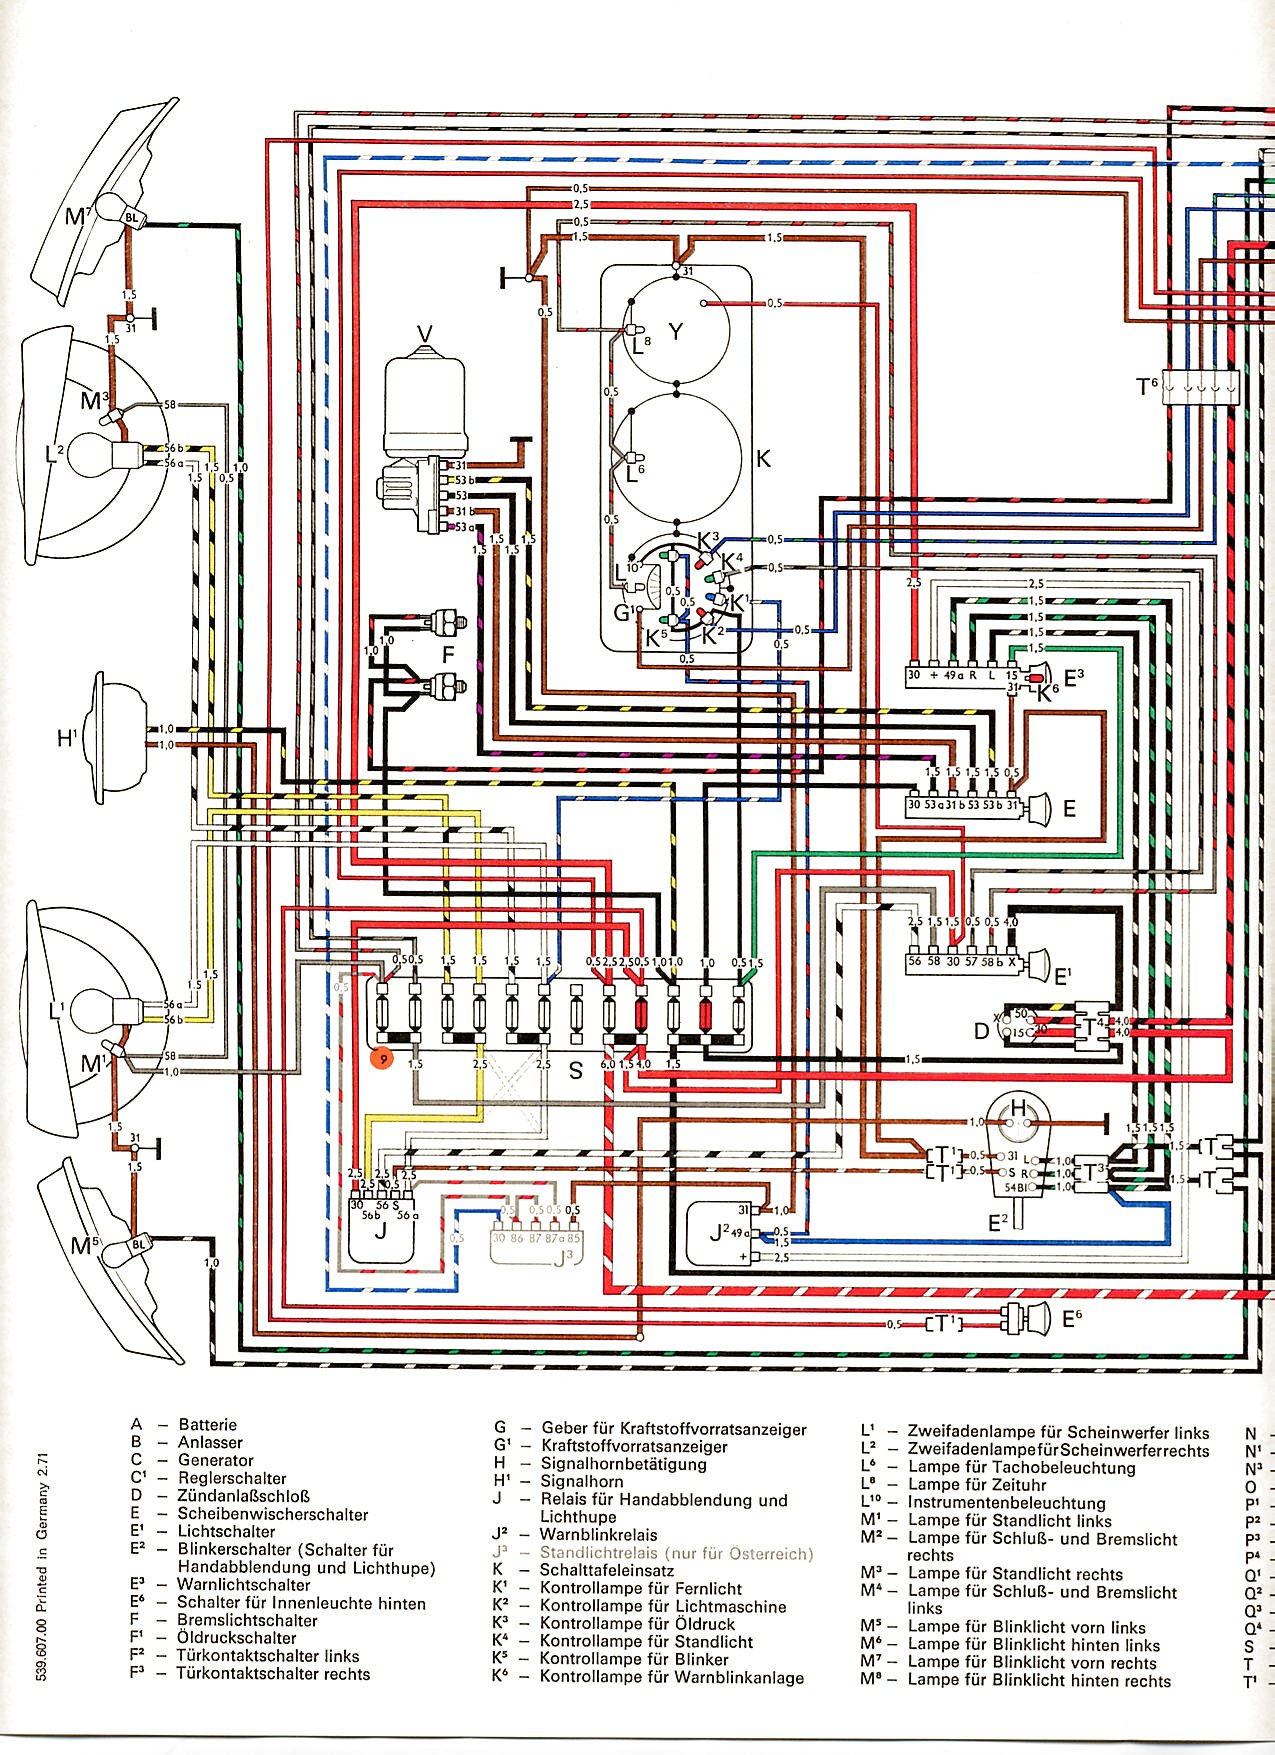 vintagebus com vw bus and other wiring diagrams rh vintagebus com 72 VW Bus Engine Diagram 1973 VW Wiring Diagram